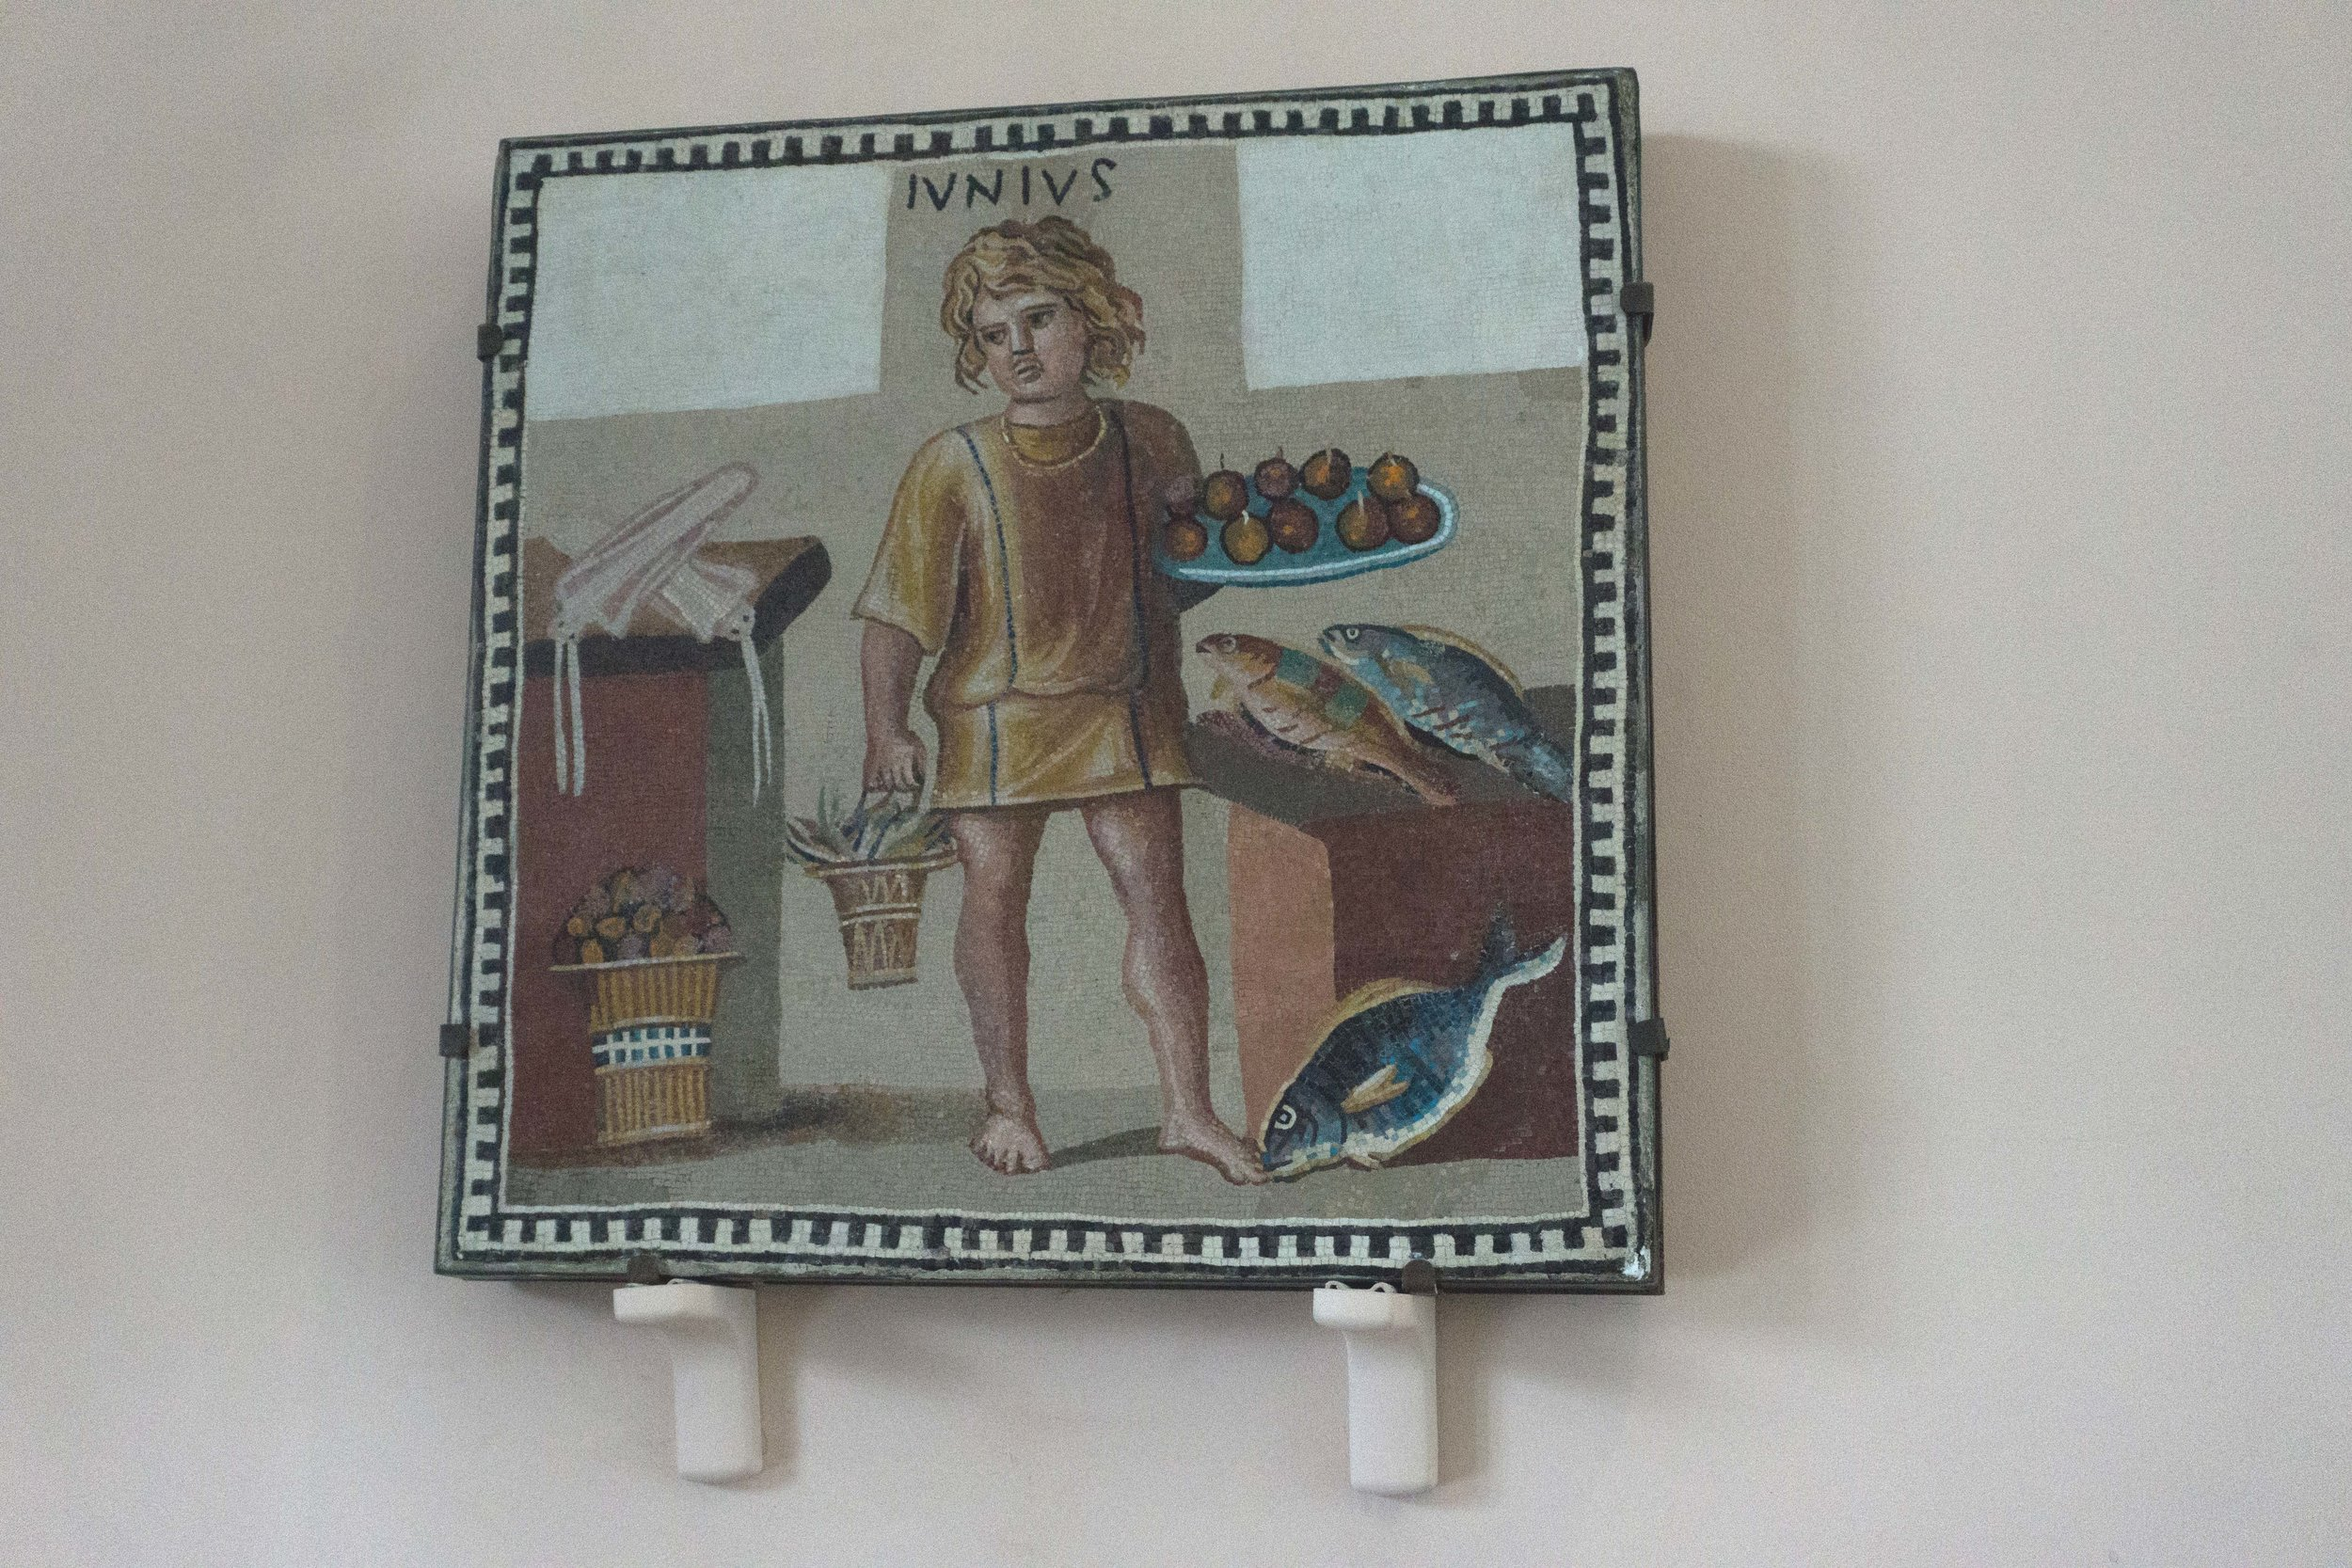 Roman Mosaic of a boy as the month of June 3rd century AD